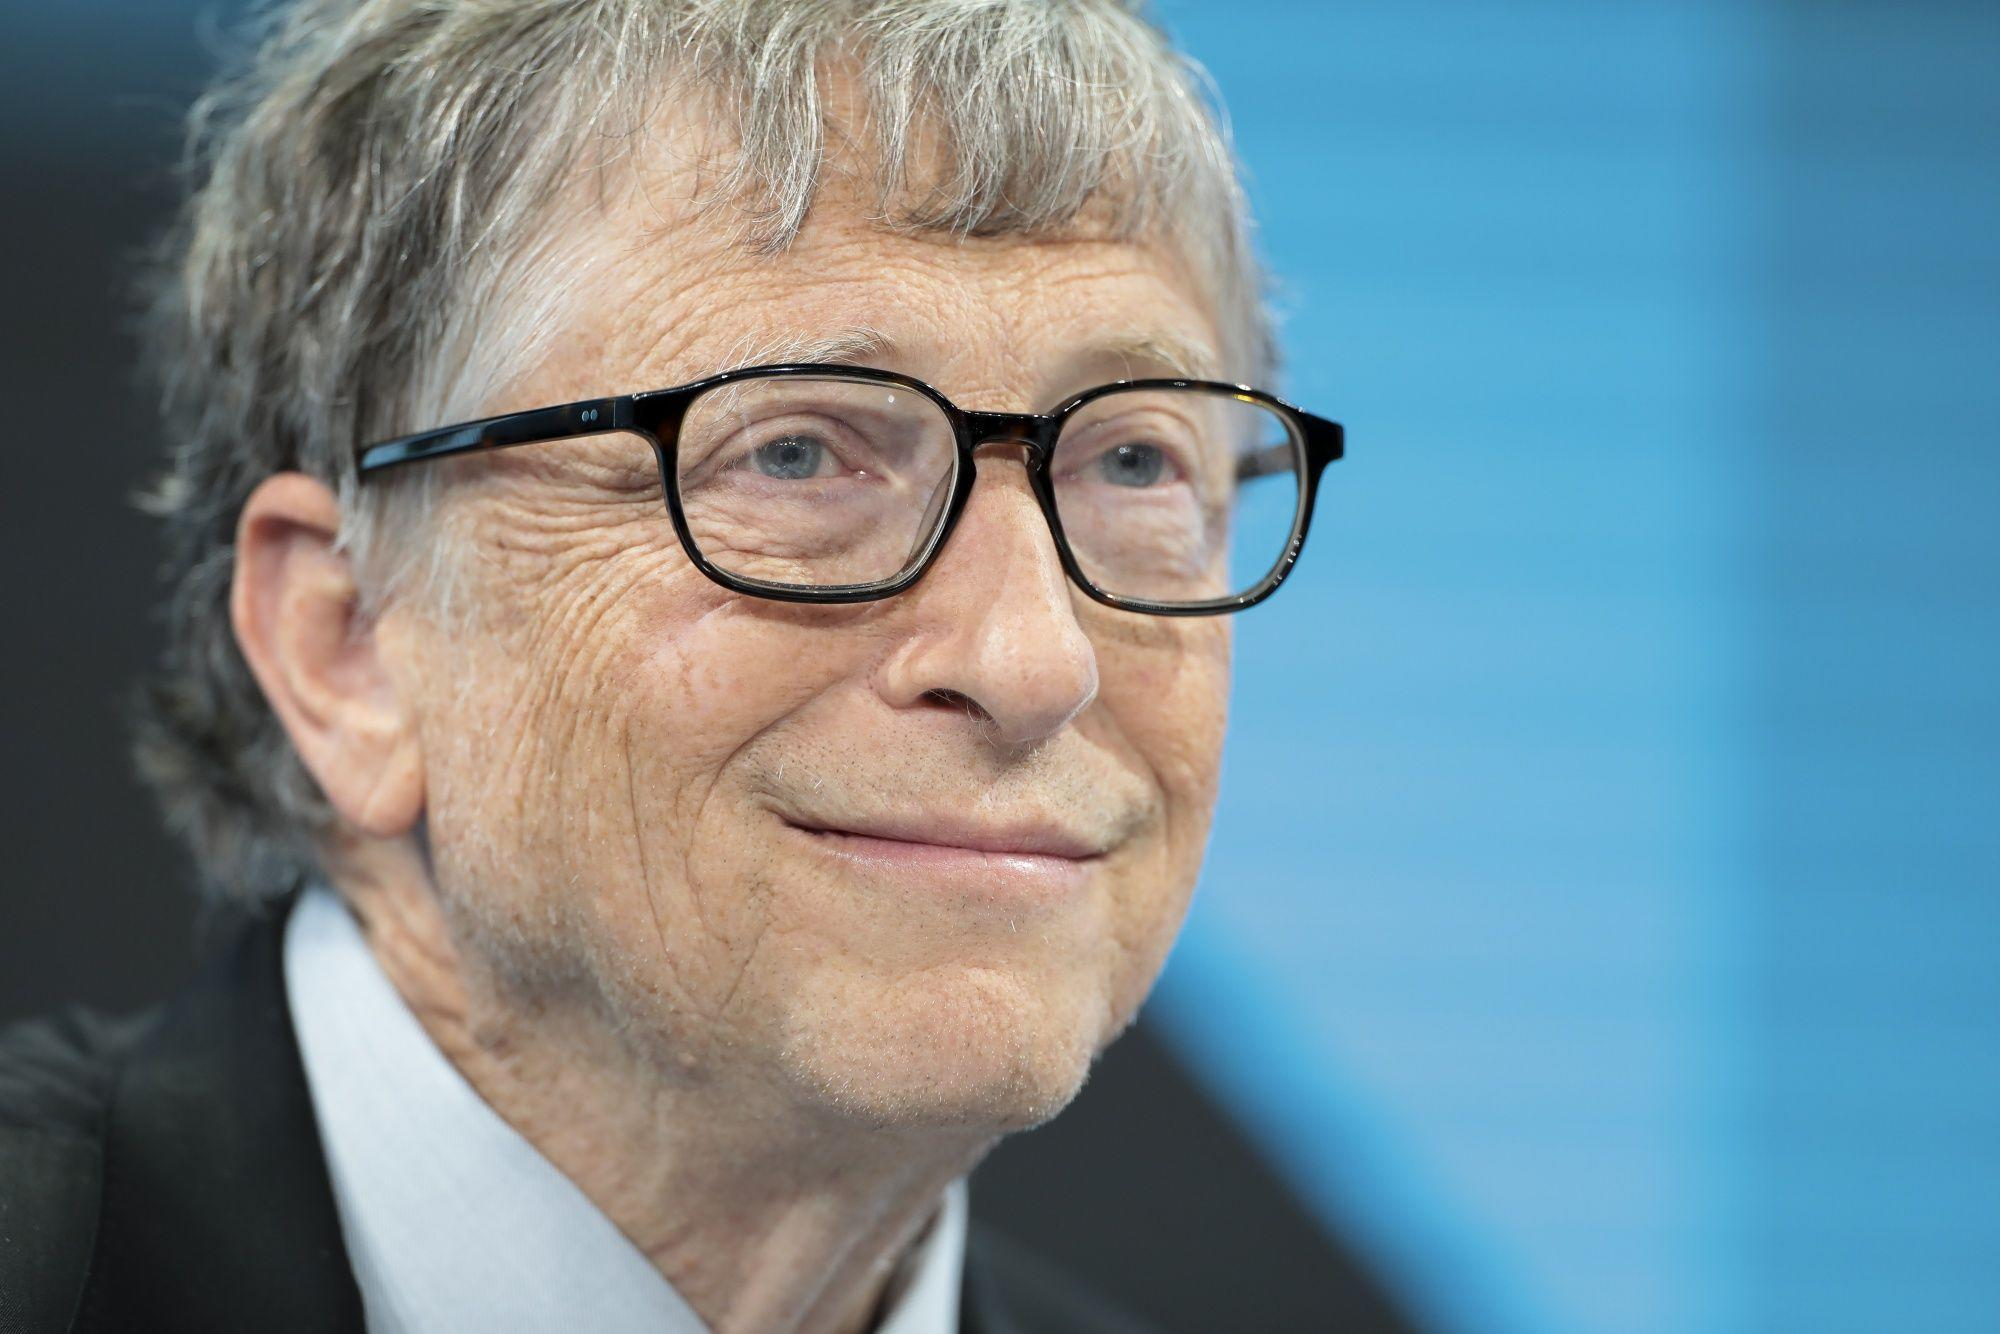 Bill Gates Has Overtaken Jeff Bezos As The World's Richest Person